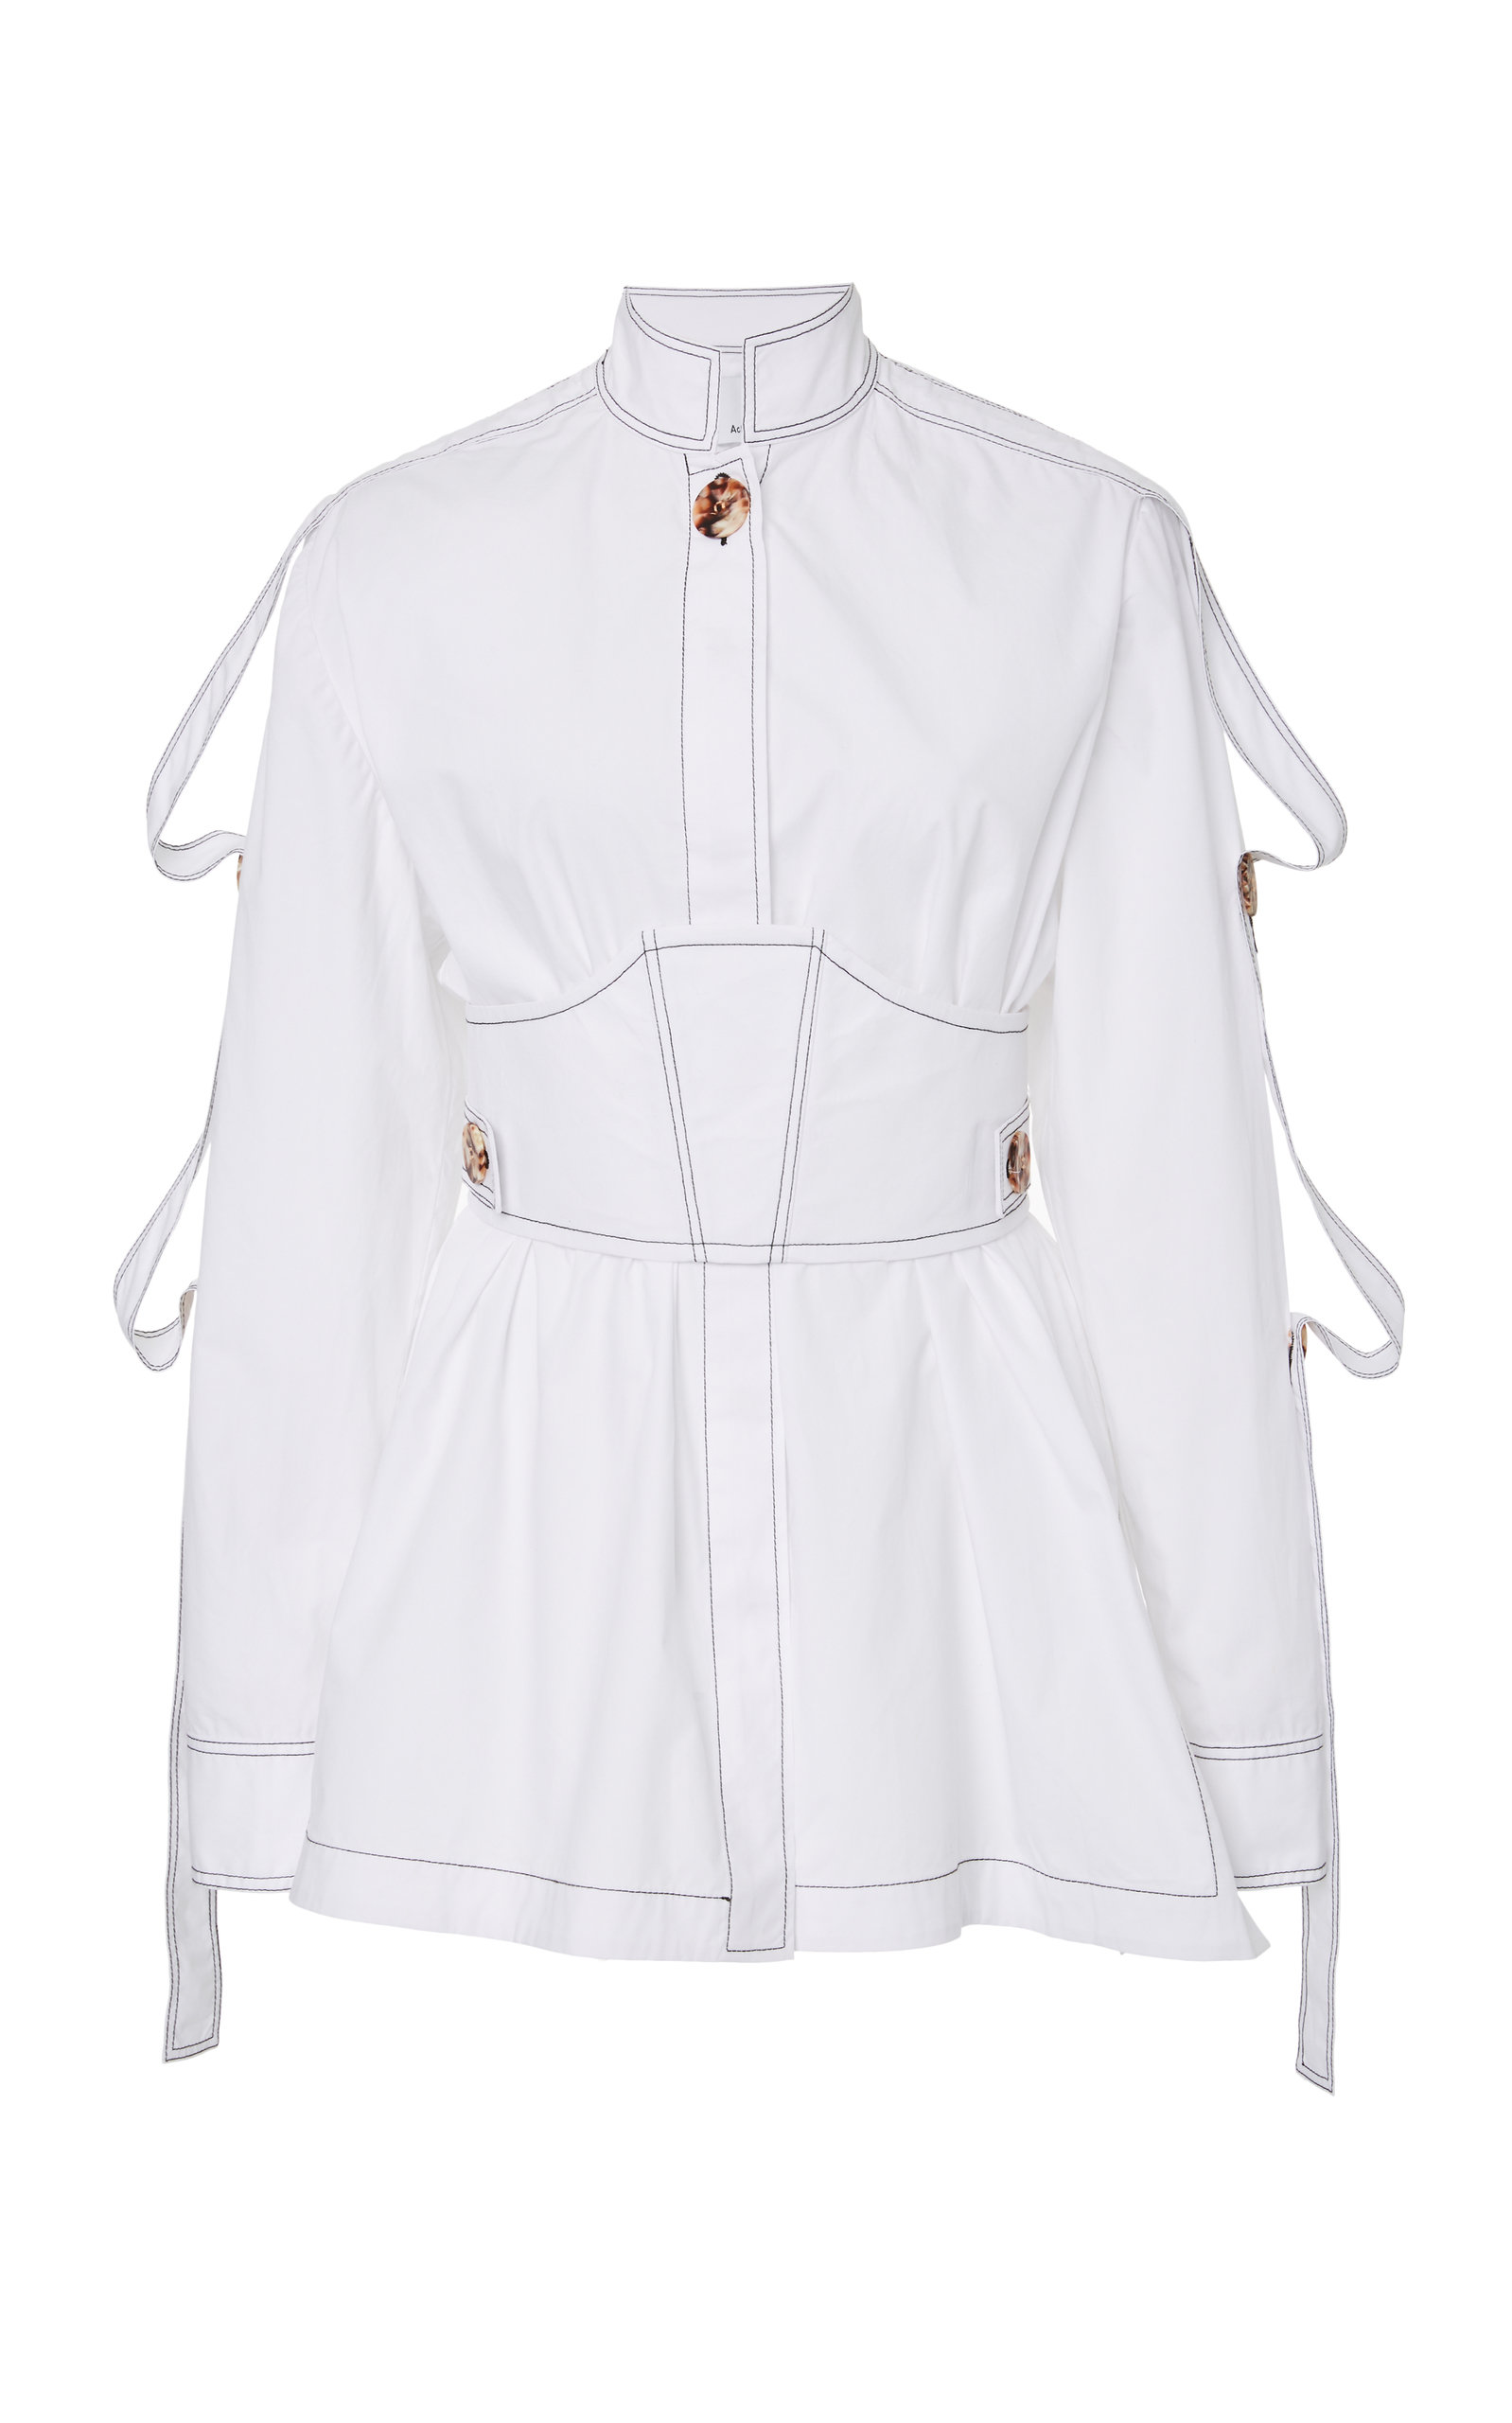 ACLER Laguna Button Up Shirt in White